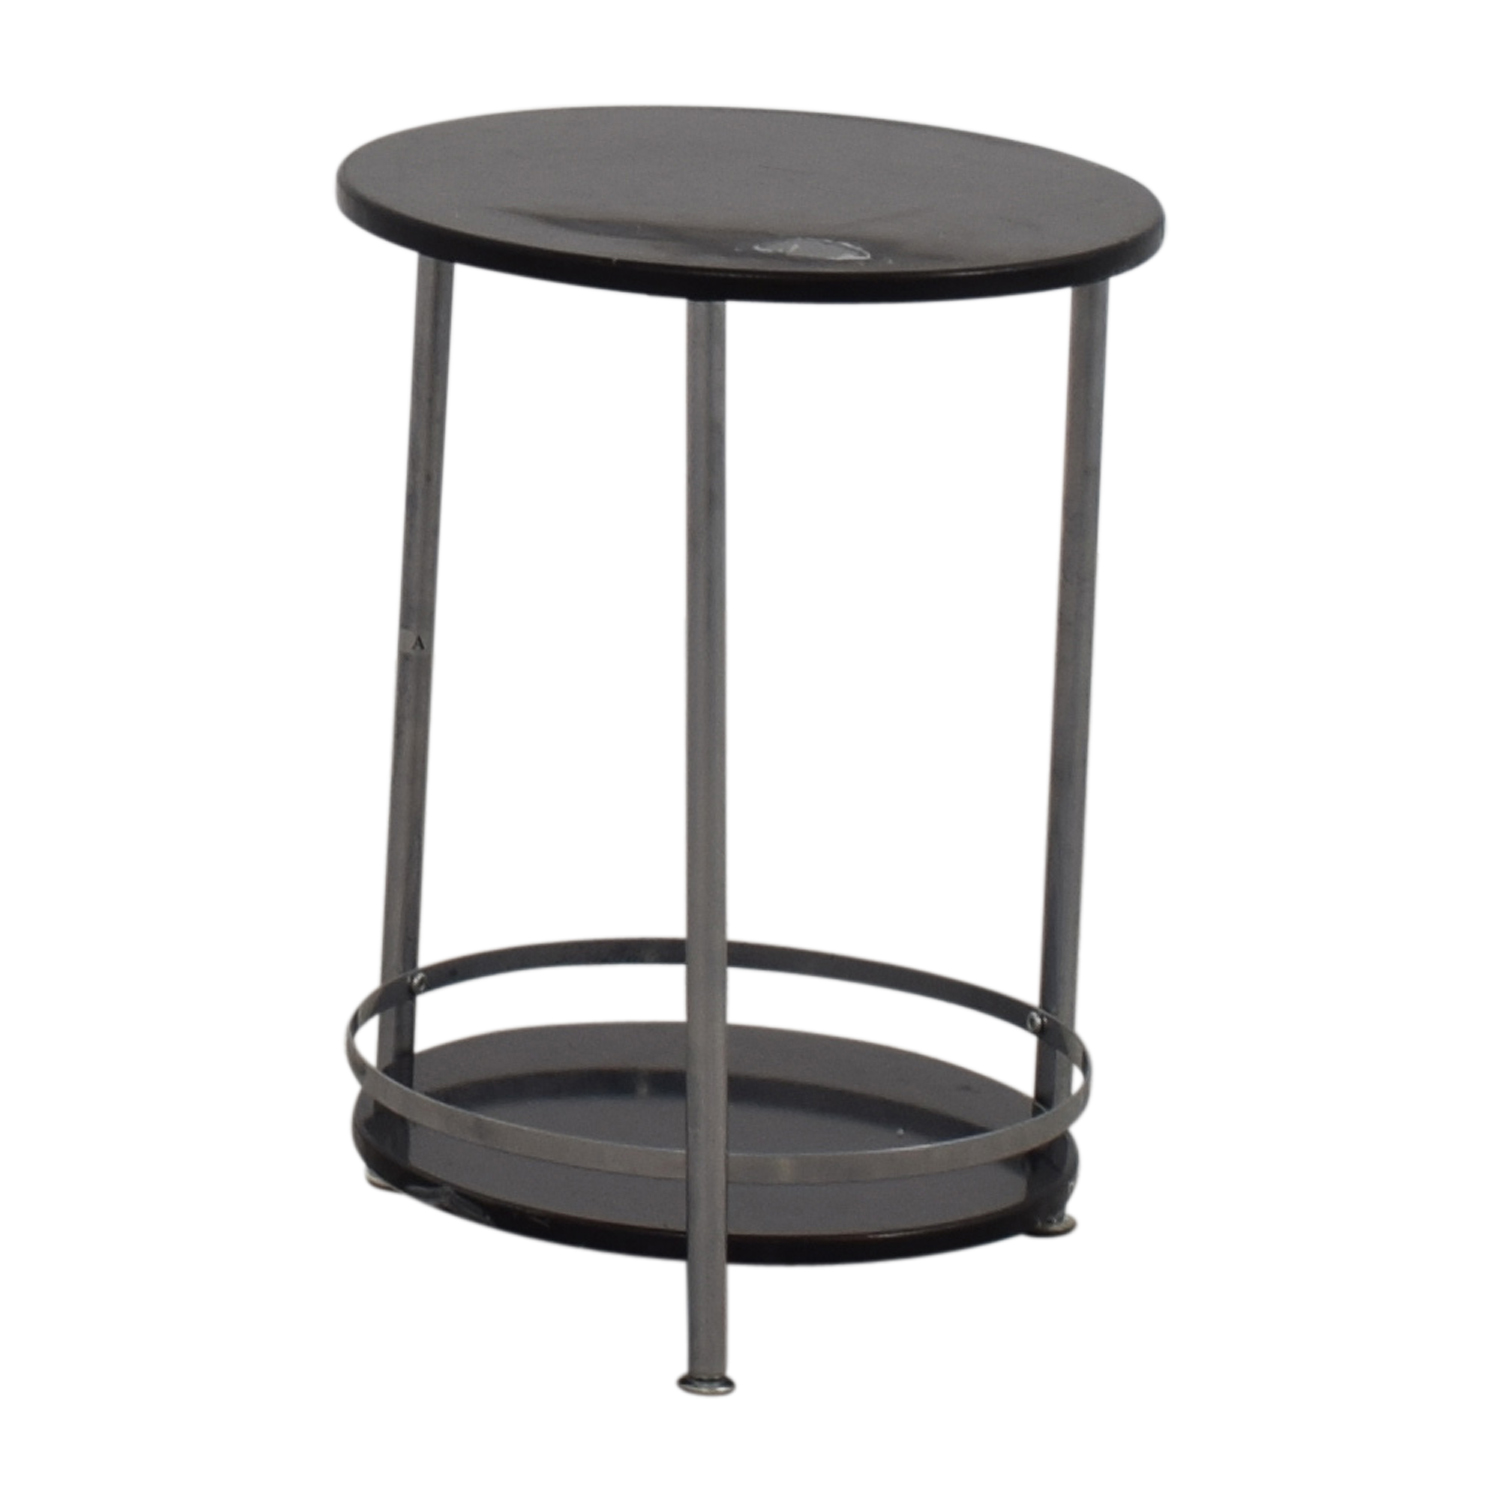 51% OFF Round Black and Chrome End table Tables